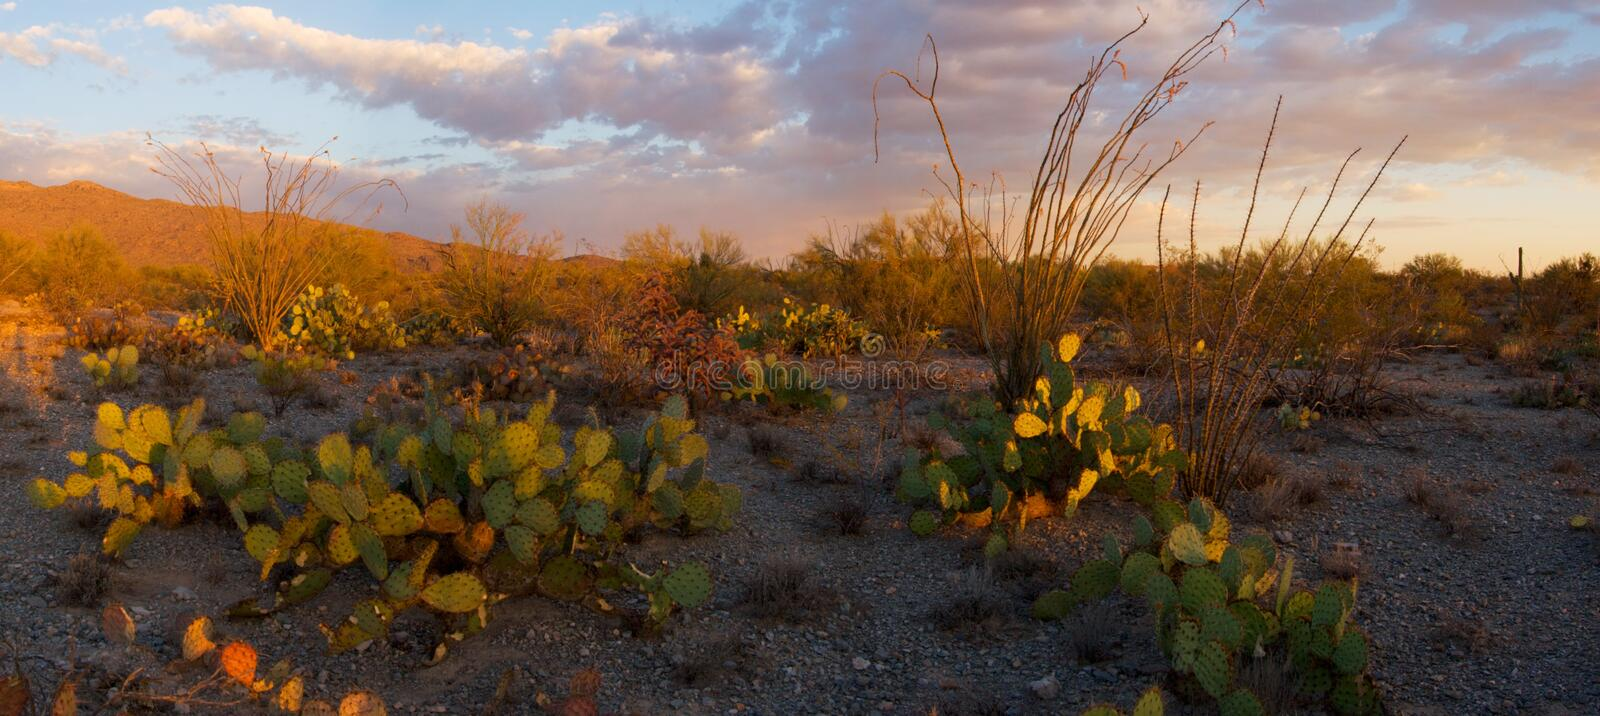 Saguaro National Monument Sunset. Ocotillo and Prickly-pear cacti at Sunset in the Sonoran Desert - Saguaro National Monument, Arizona, USA stock photos